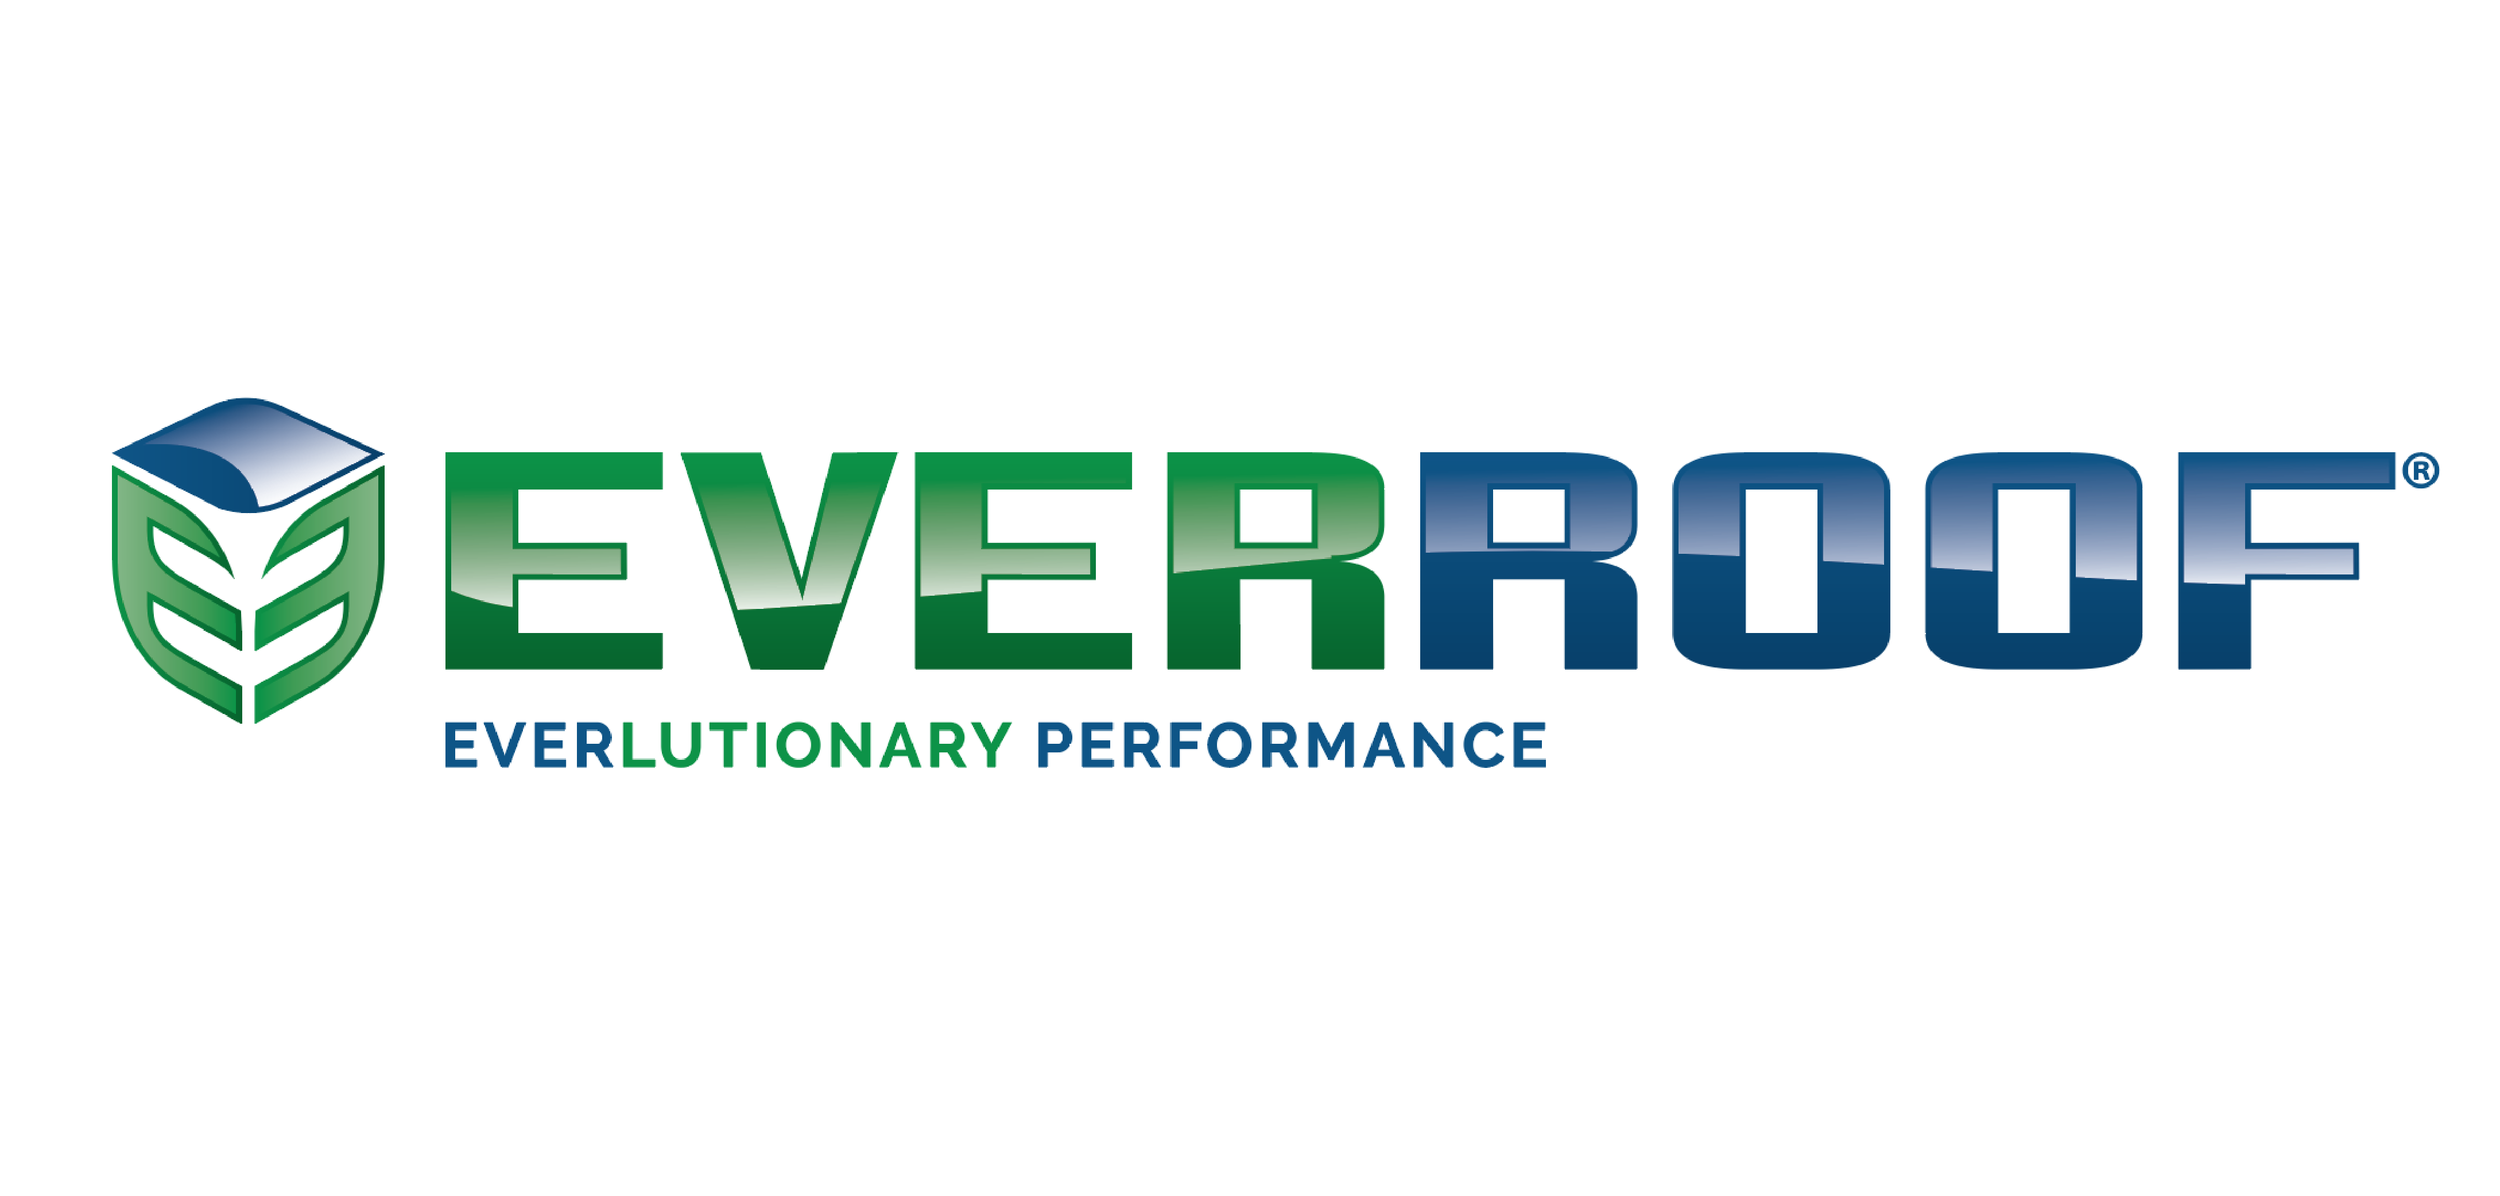 Everroof Logo-01.png